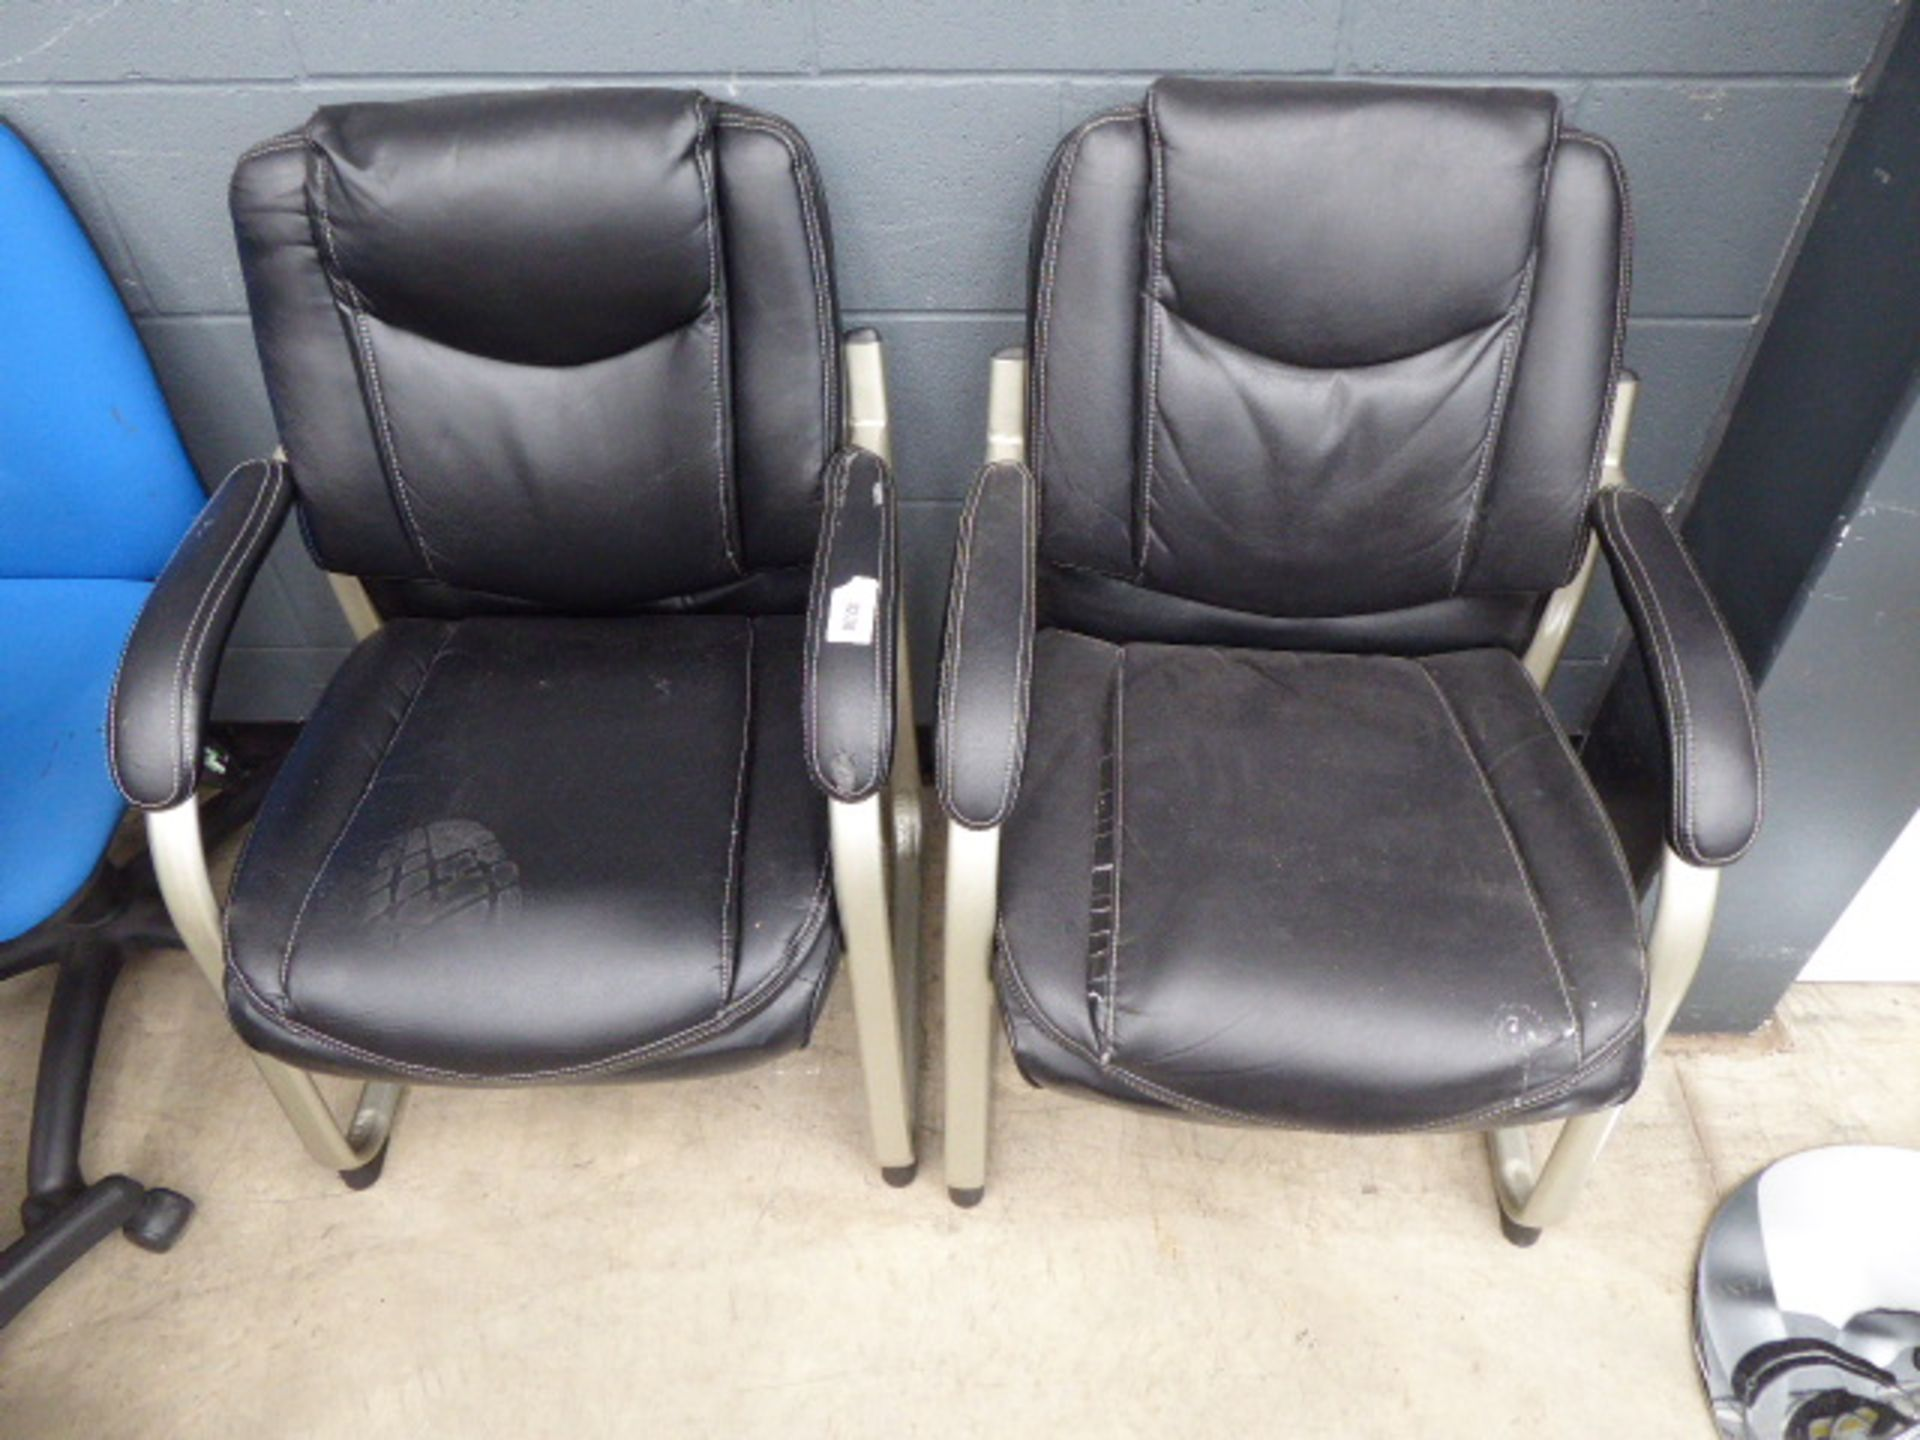 Lot 4238 - 4247 2 Slide frame chairs